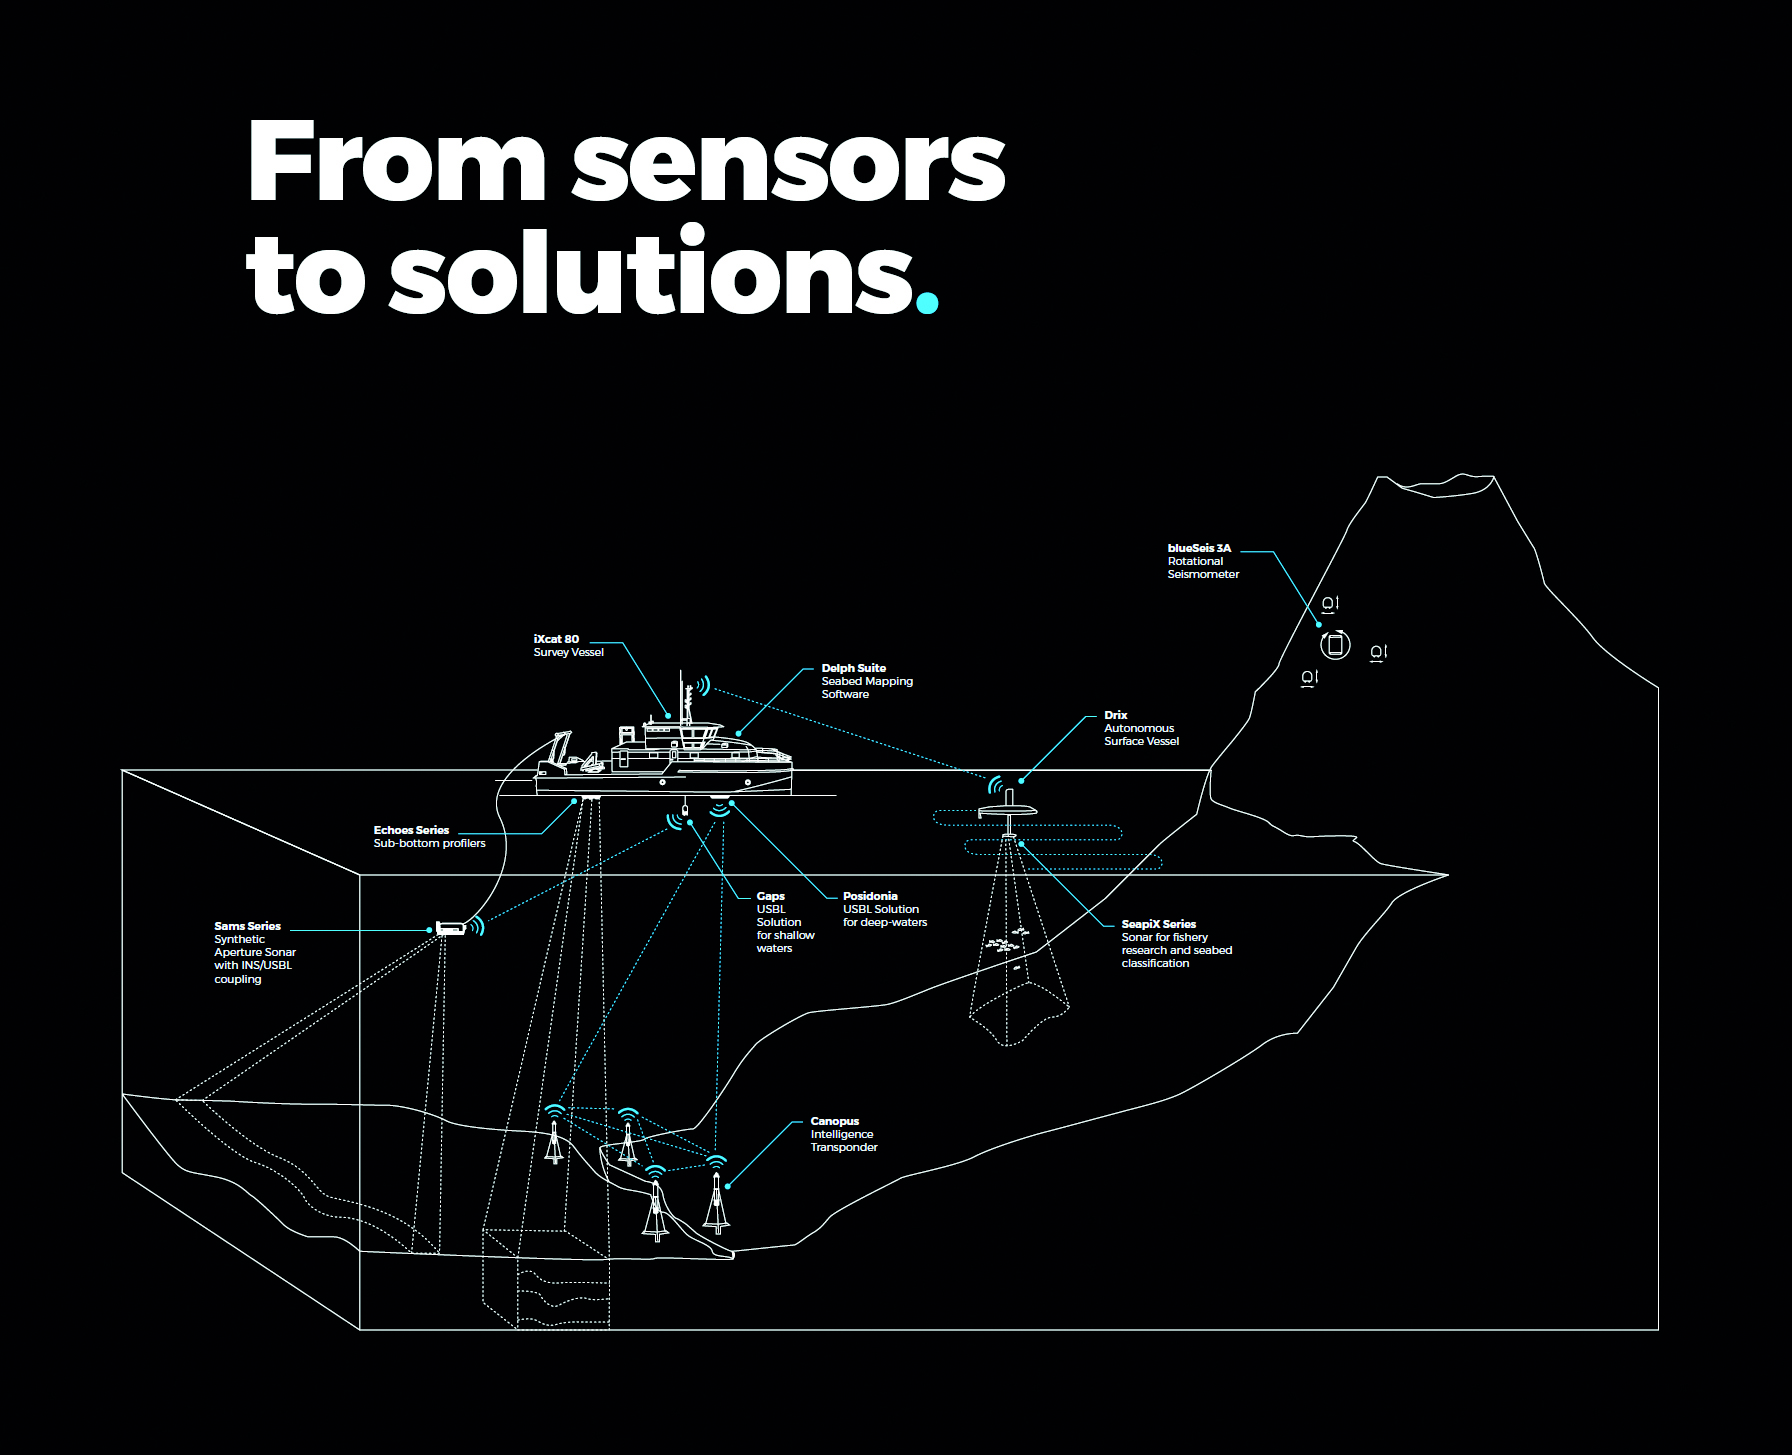 From sensors to solutions.